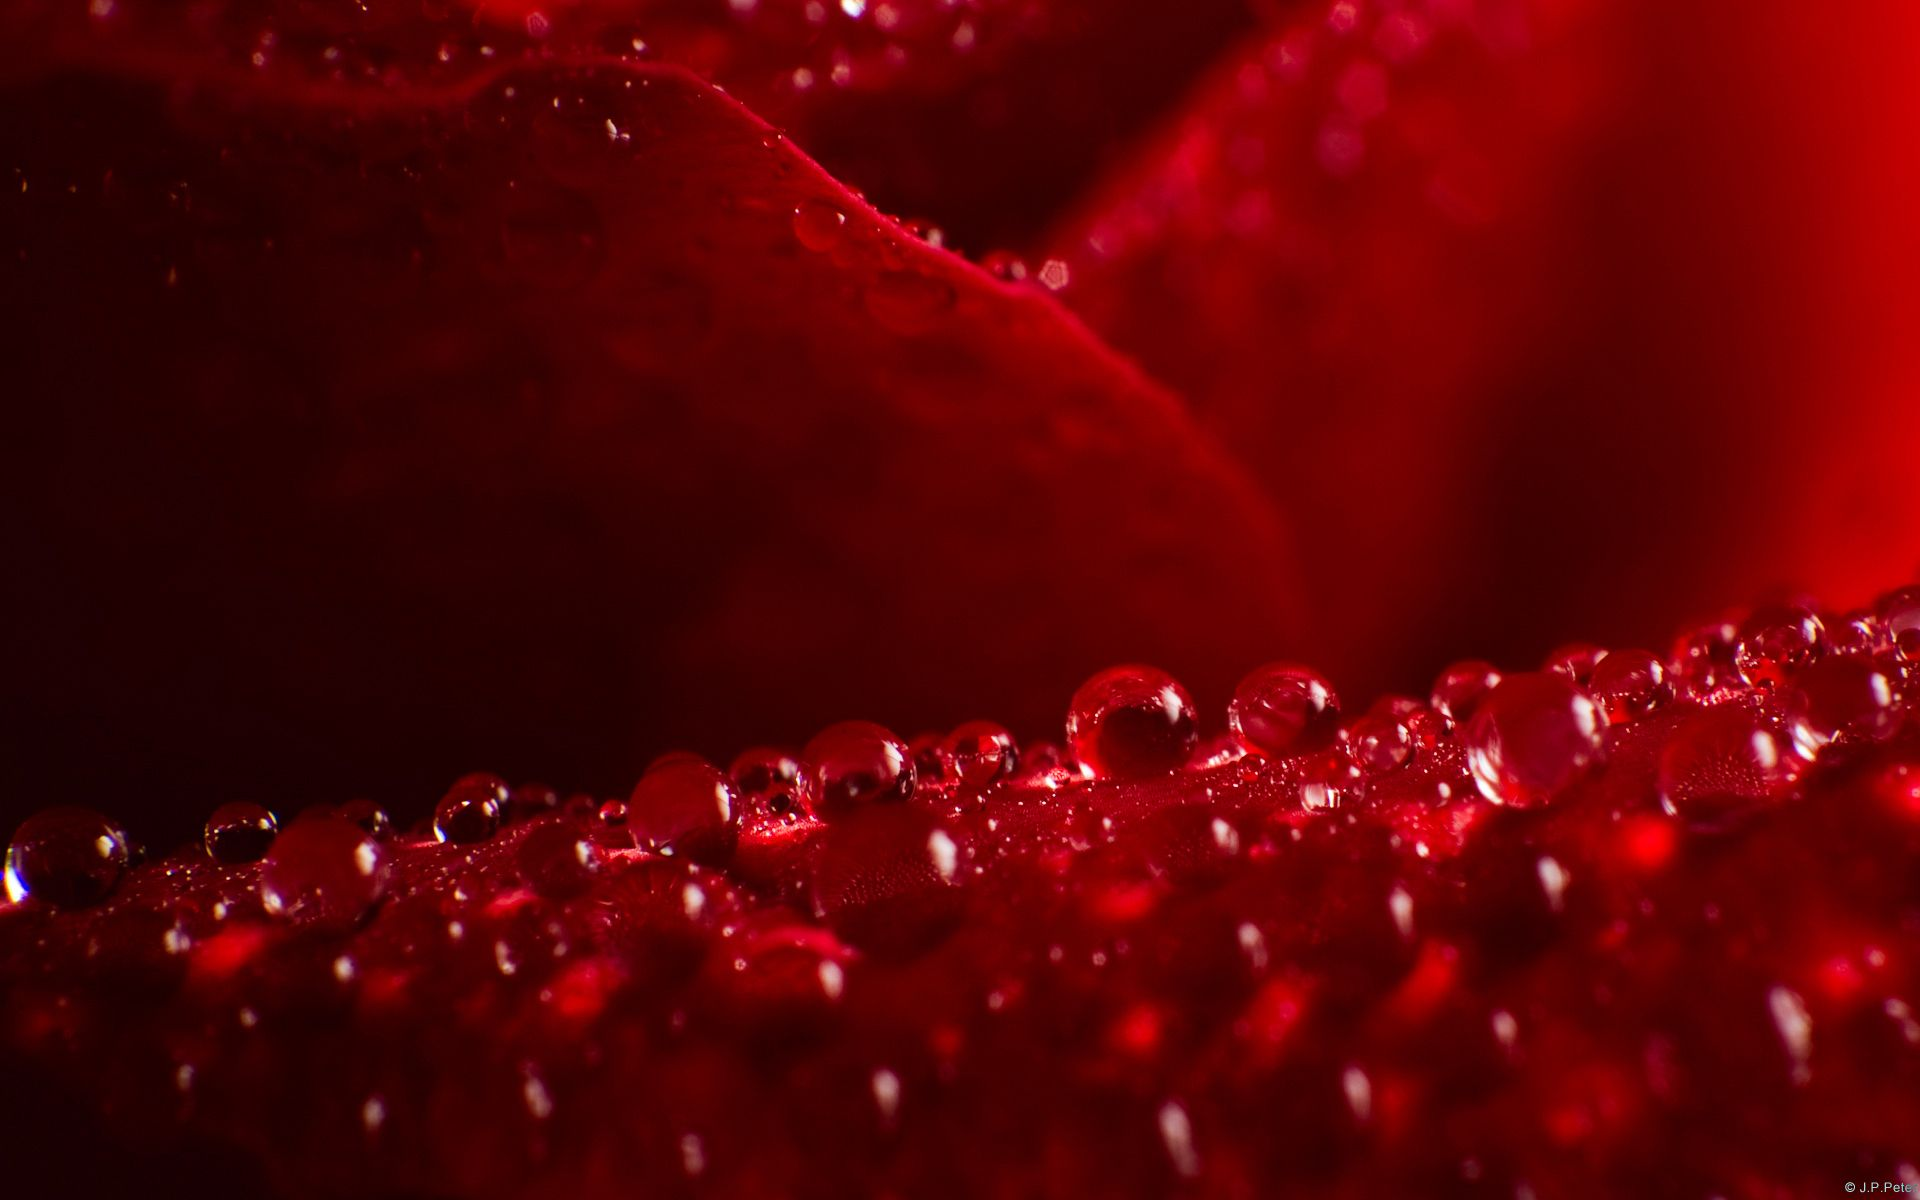 Hd wallpaper red rose - Wallpapers Red Rose Hd 1920 1200 Red Rose